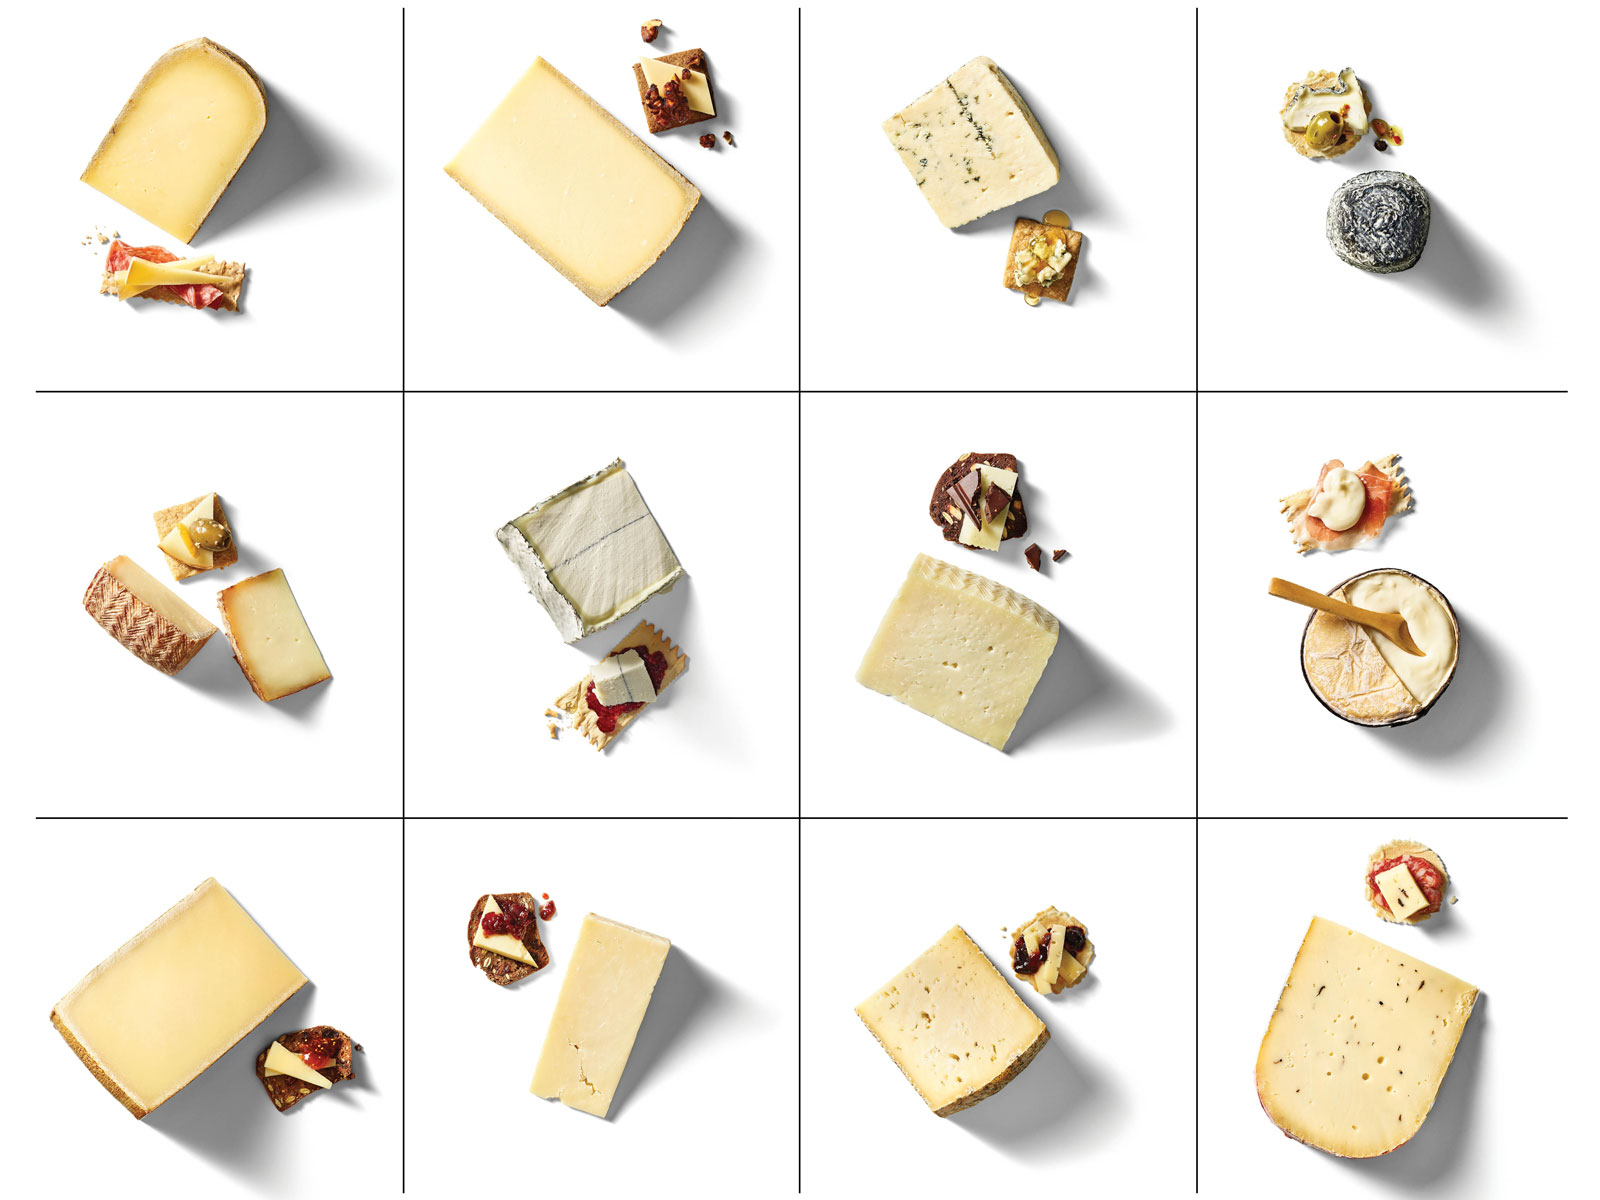 '12 Days of Cheese' Returns to Whole Foods in Time for Party Season